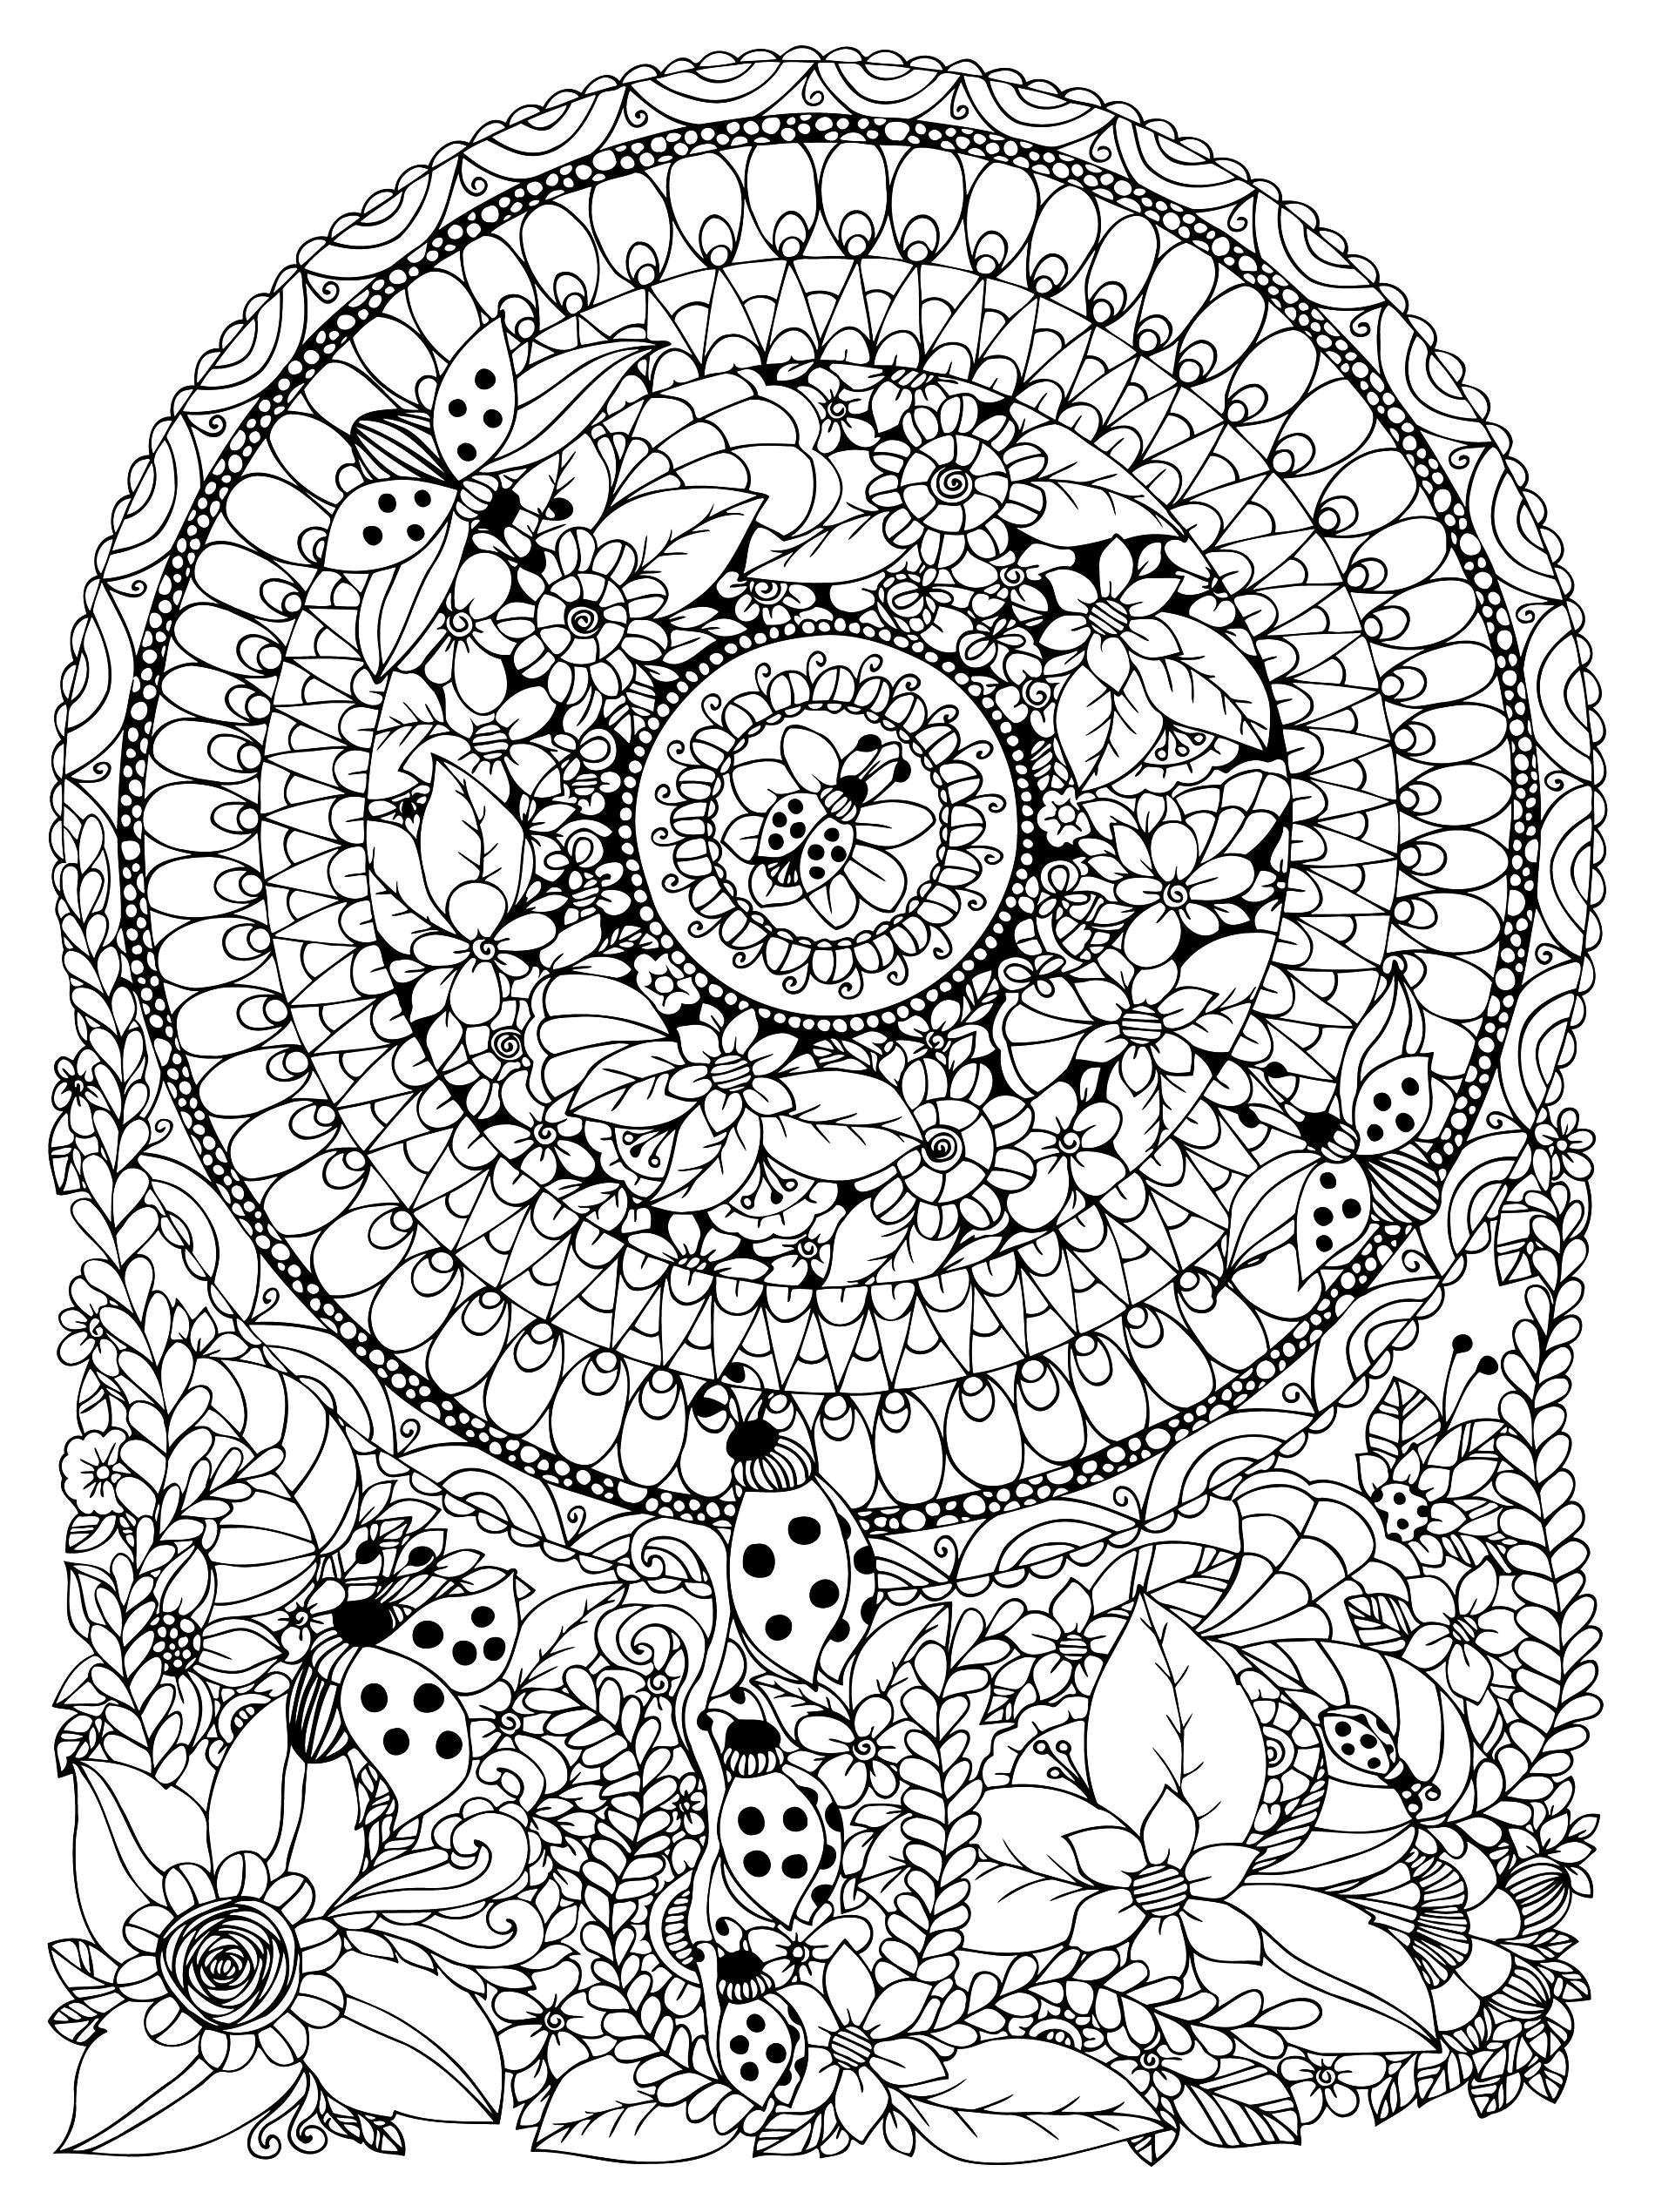 A Mandala featuring ladybugs & flowers, for those who prefer to color concrete and living elements. Do whatever it takes to get rid of any distractions that may interfere with your coloring.